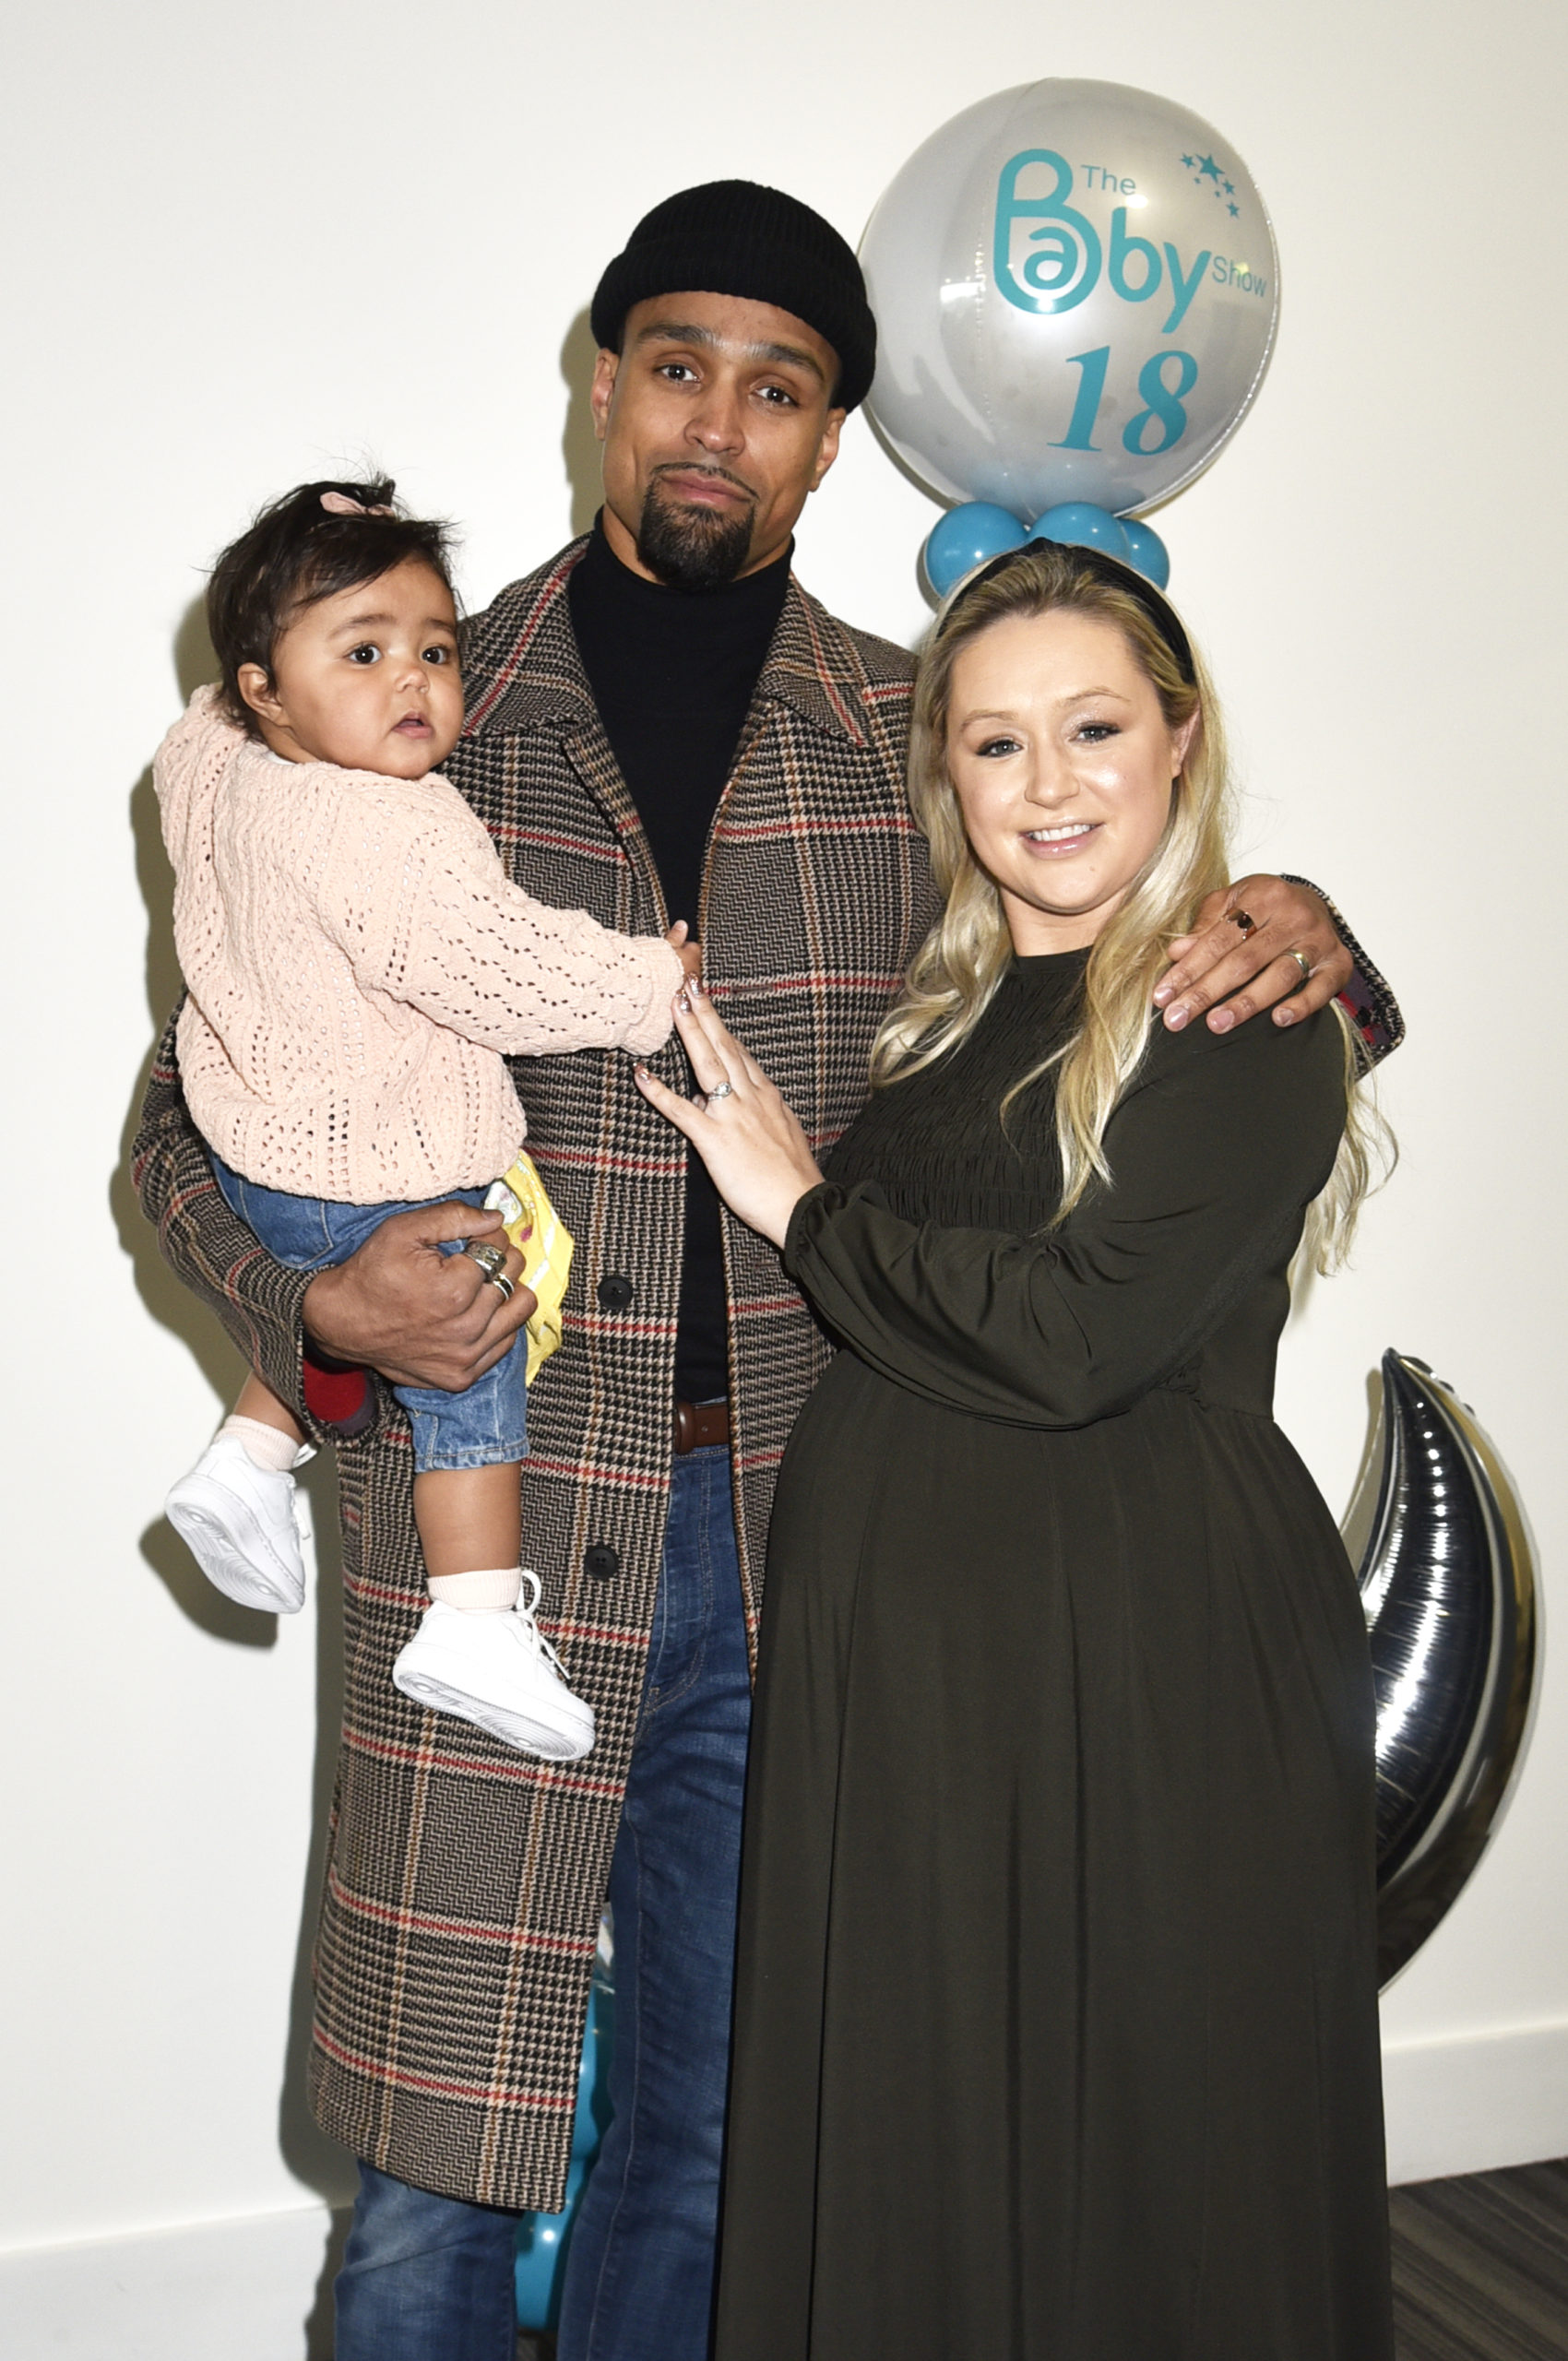 Ashley Banjo, pictured with wife Francesca and daughter Rose, has revealed his new blonde lockdown hair